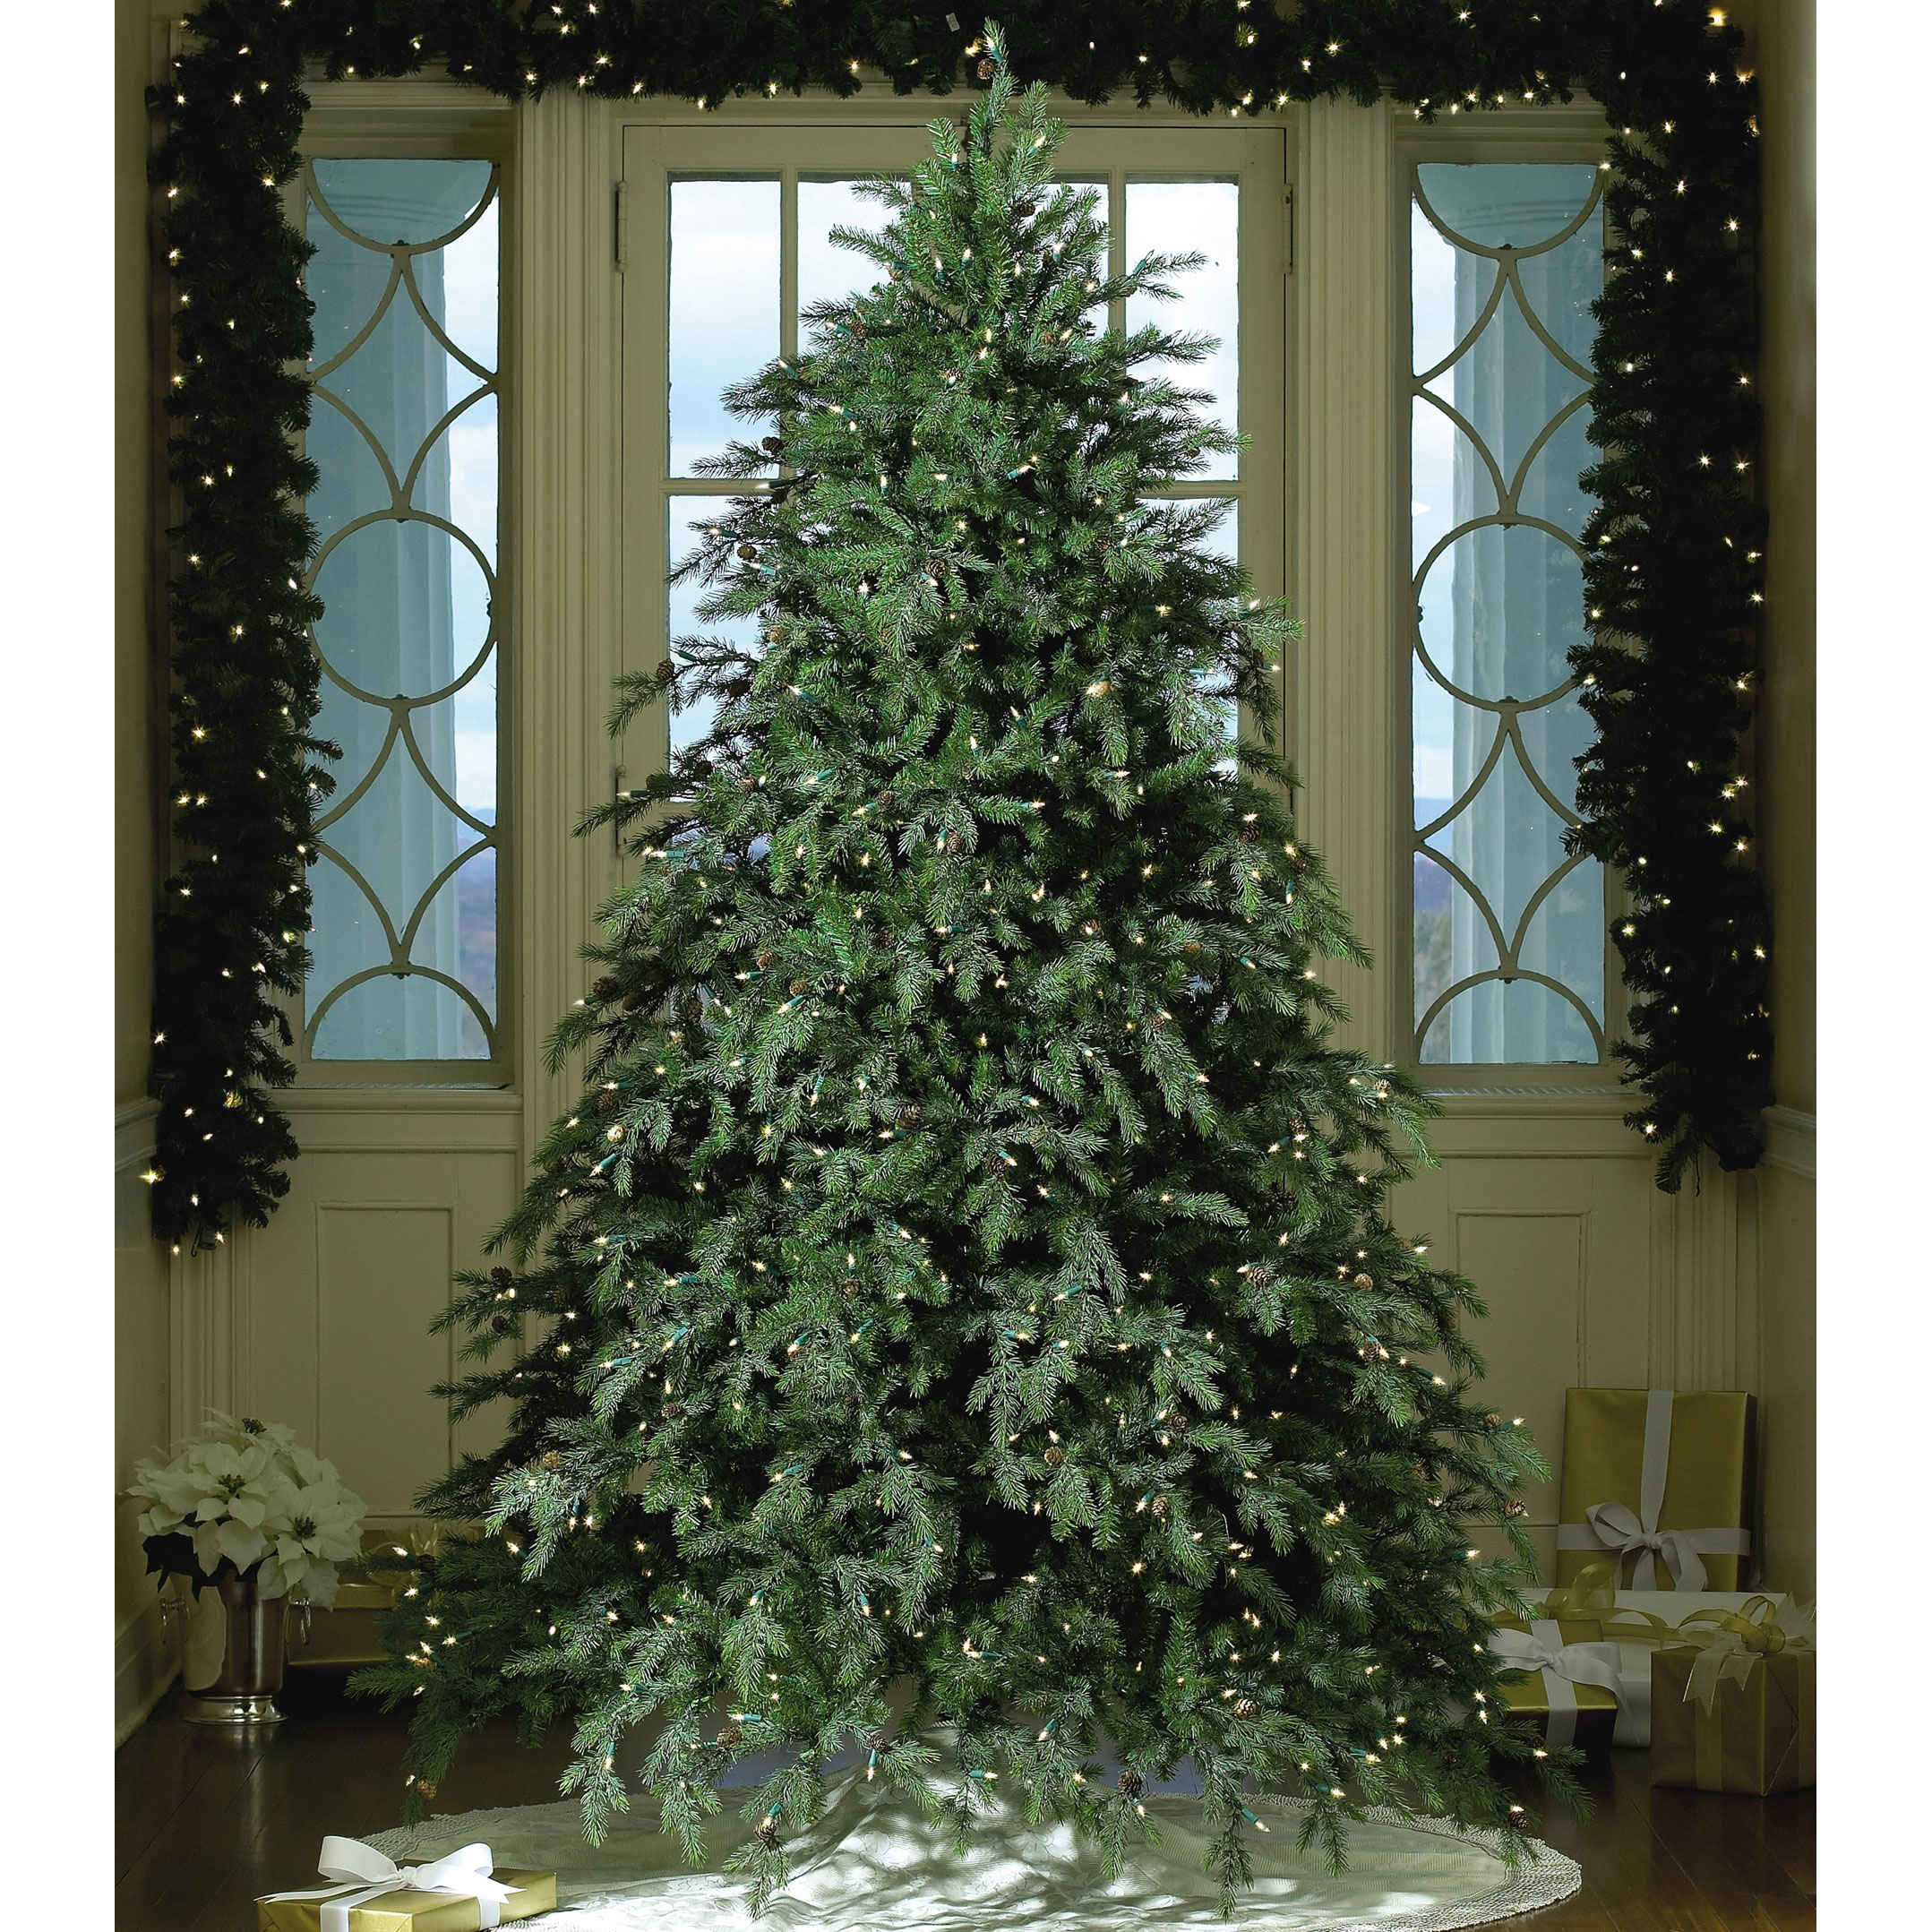 Commercial Christmas Trees From 12 To 100 In Height: Hunter